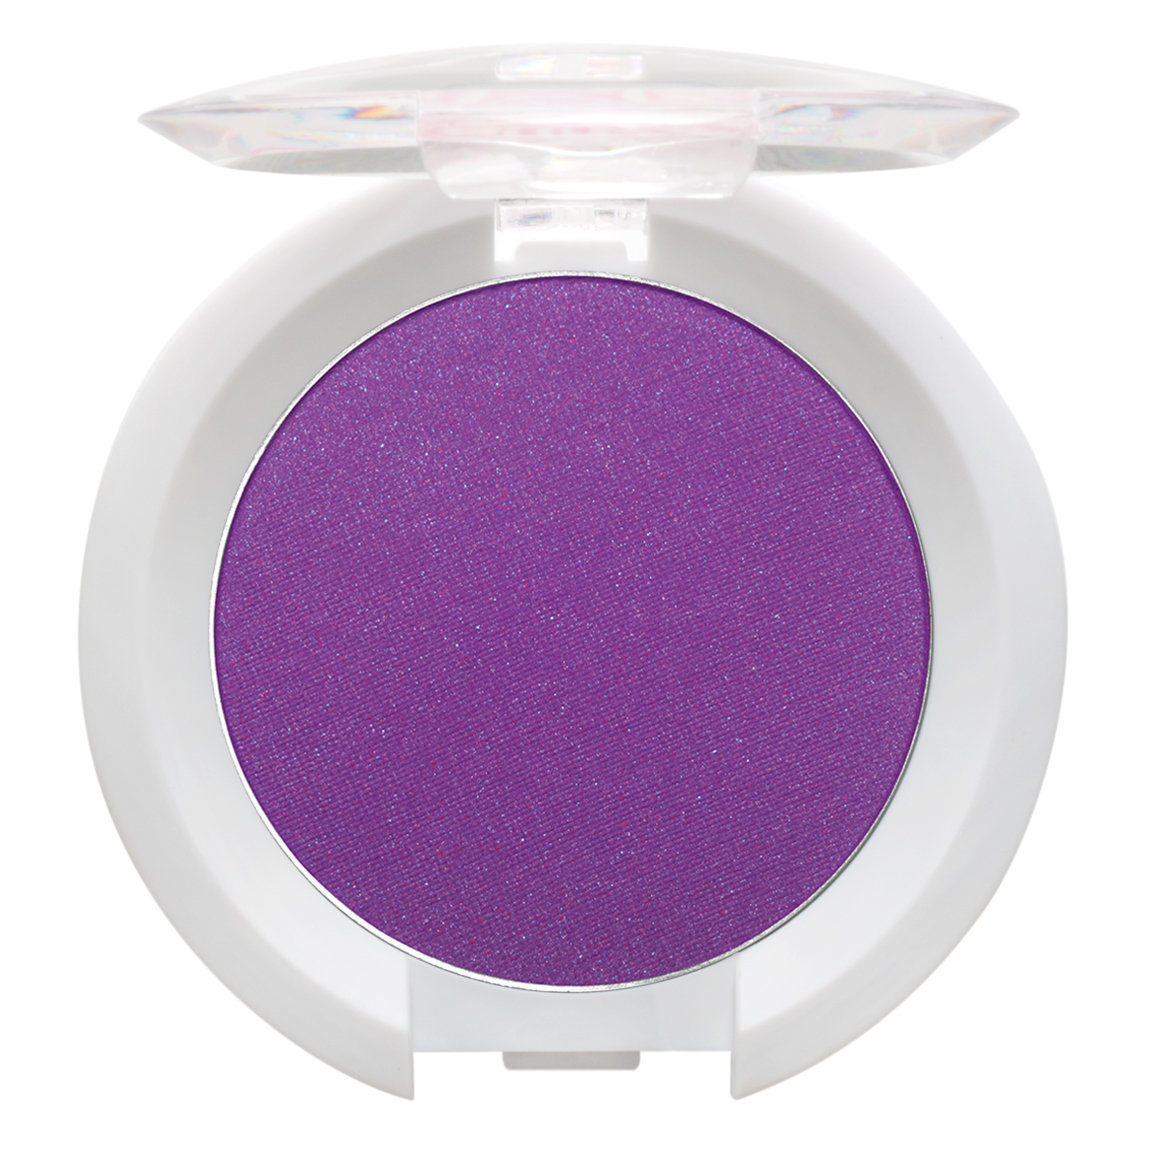 Sugarpill Cosmetics Pressed Eyeshadow Poison Plum product smear.